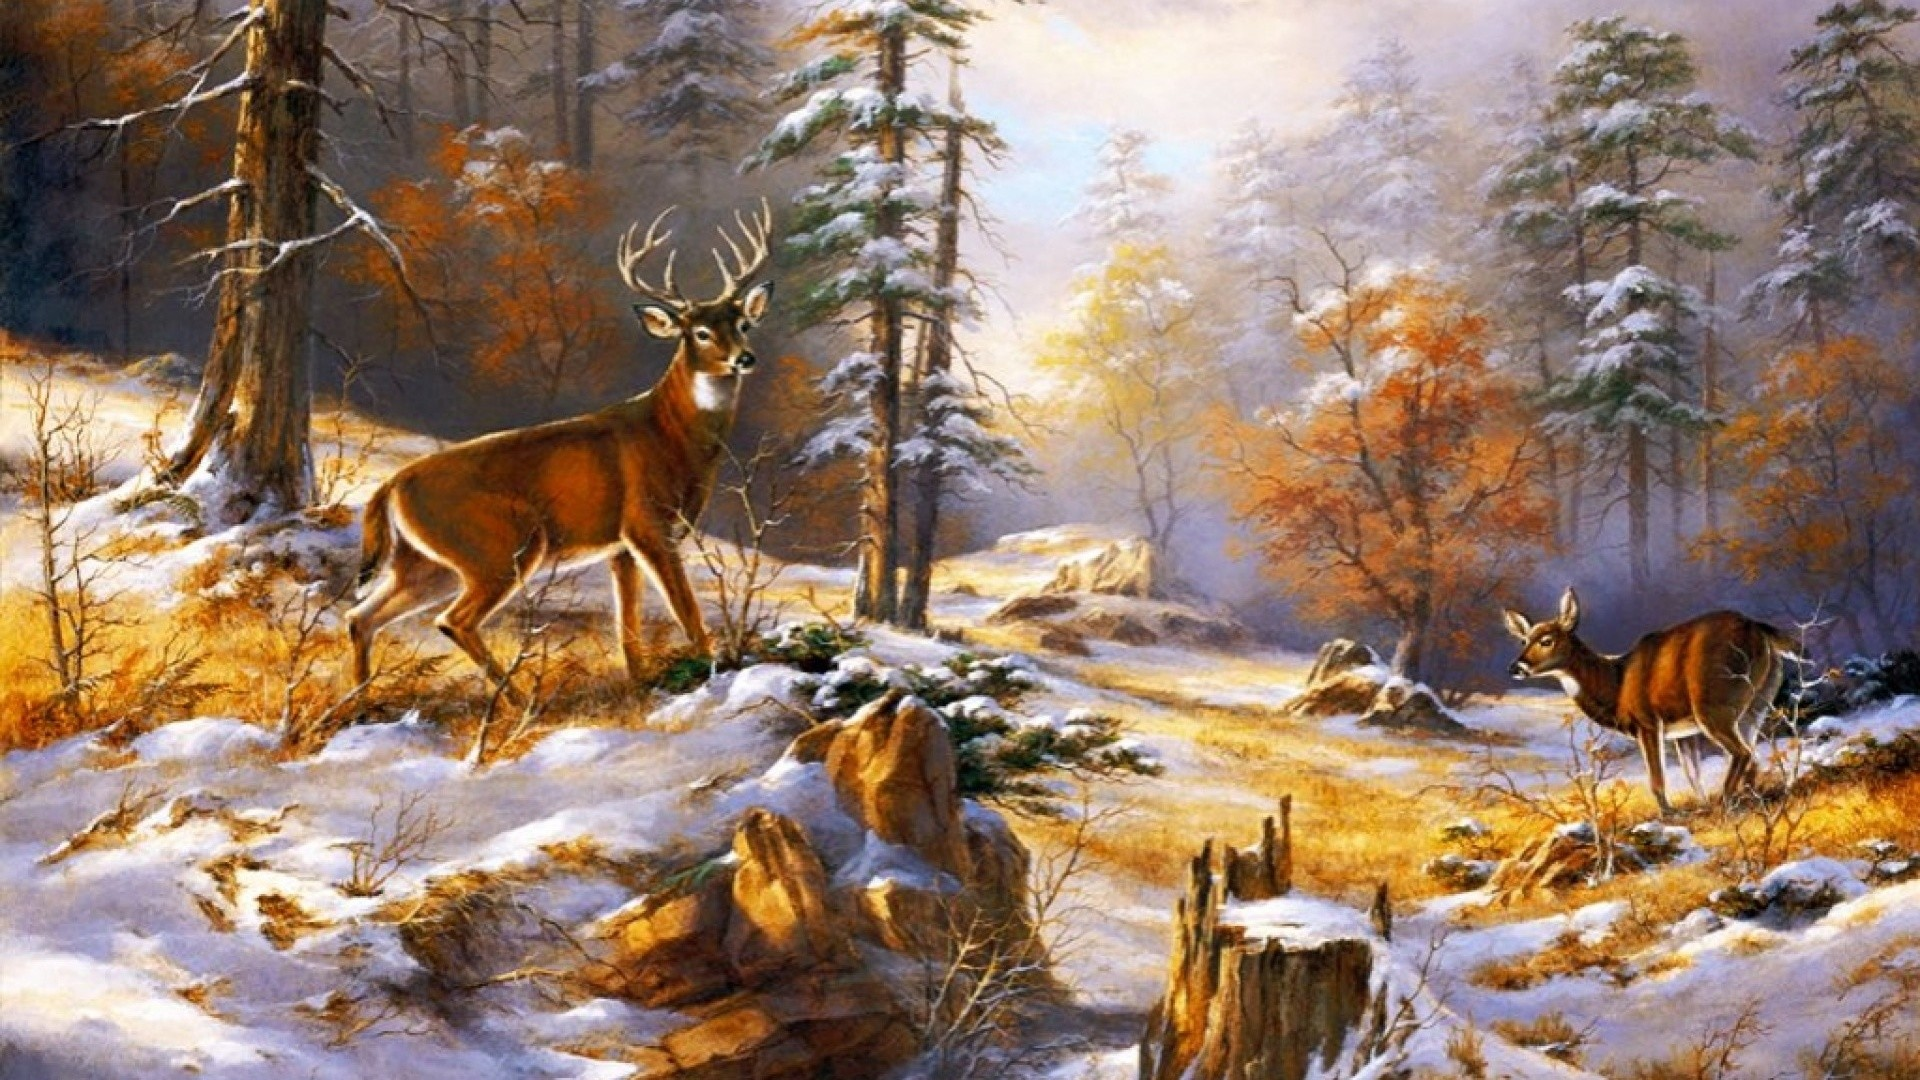 1920x1080  wood pretty deer early winter desktop pc and mac Warm Fireplace  Facebook Timeline Covers Whimsical